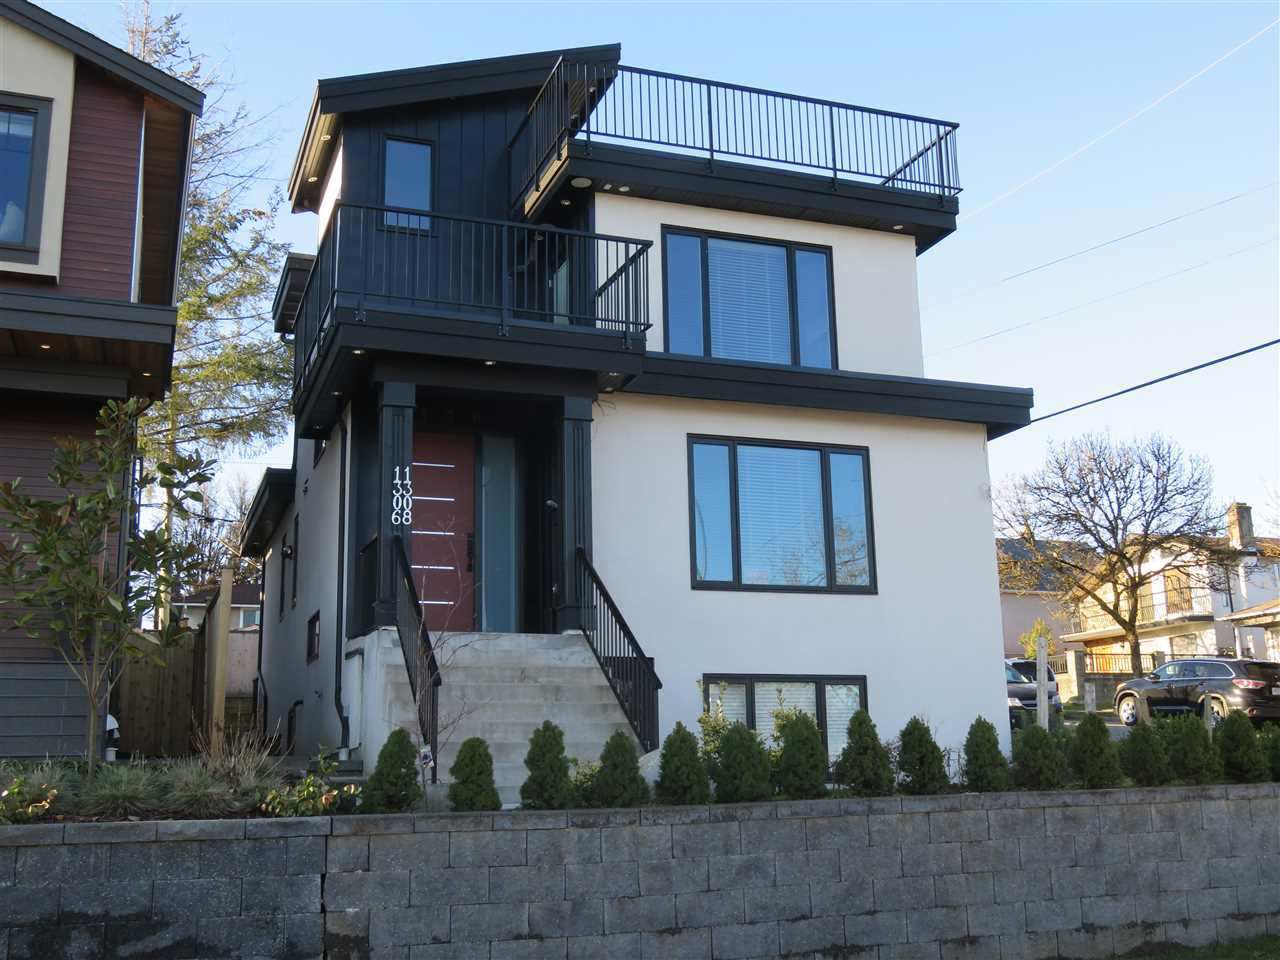 This custom home features 2 levels on basement, plus a laneway house!